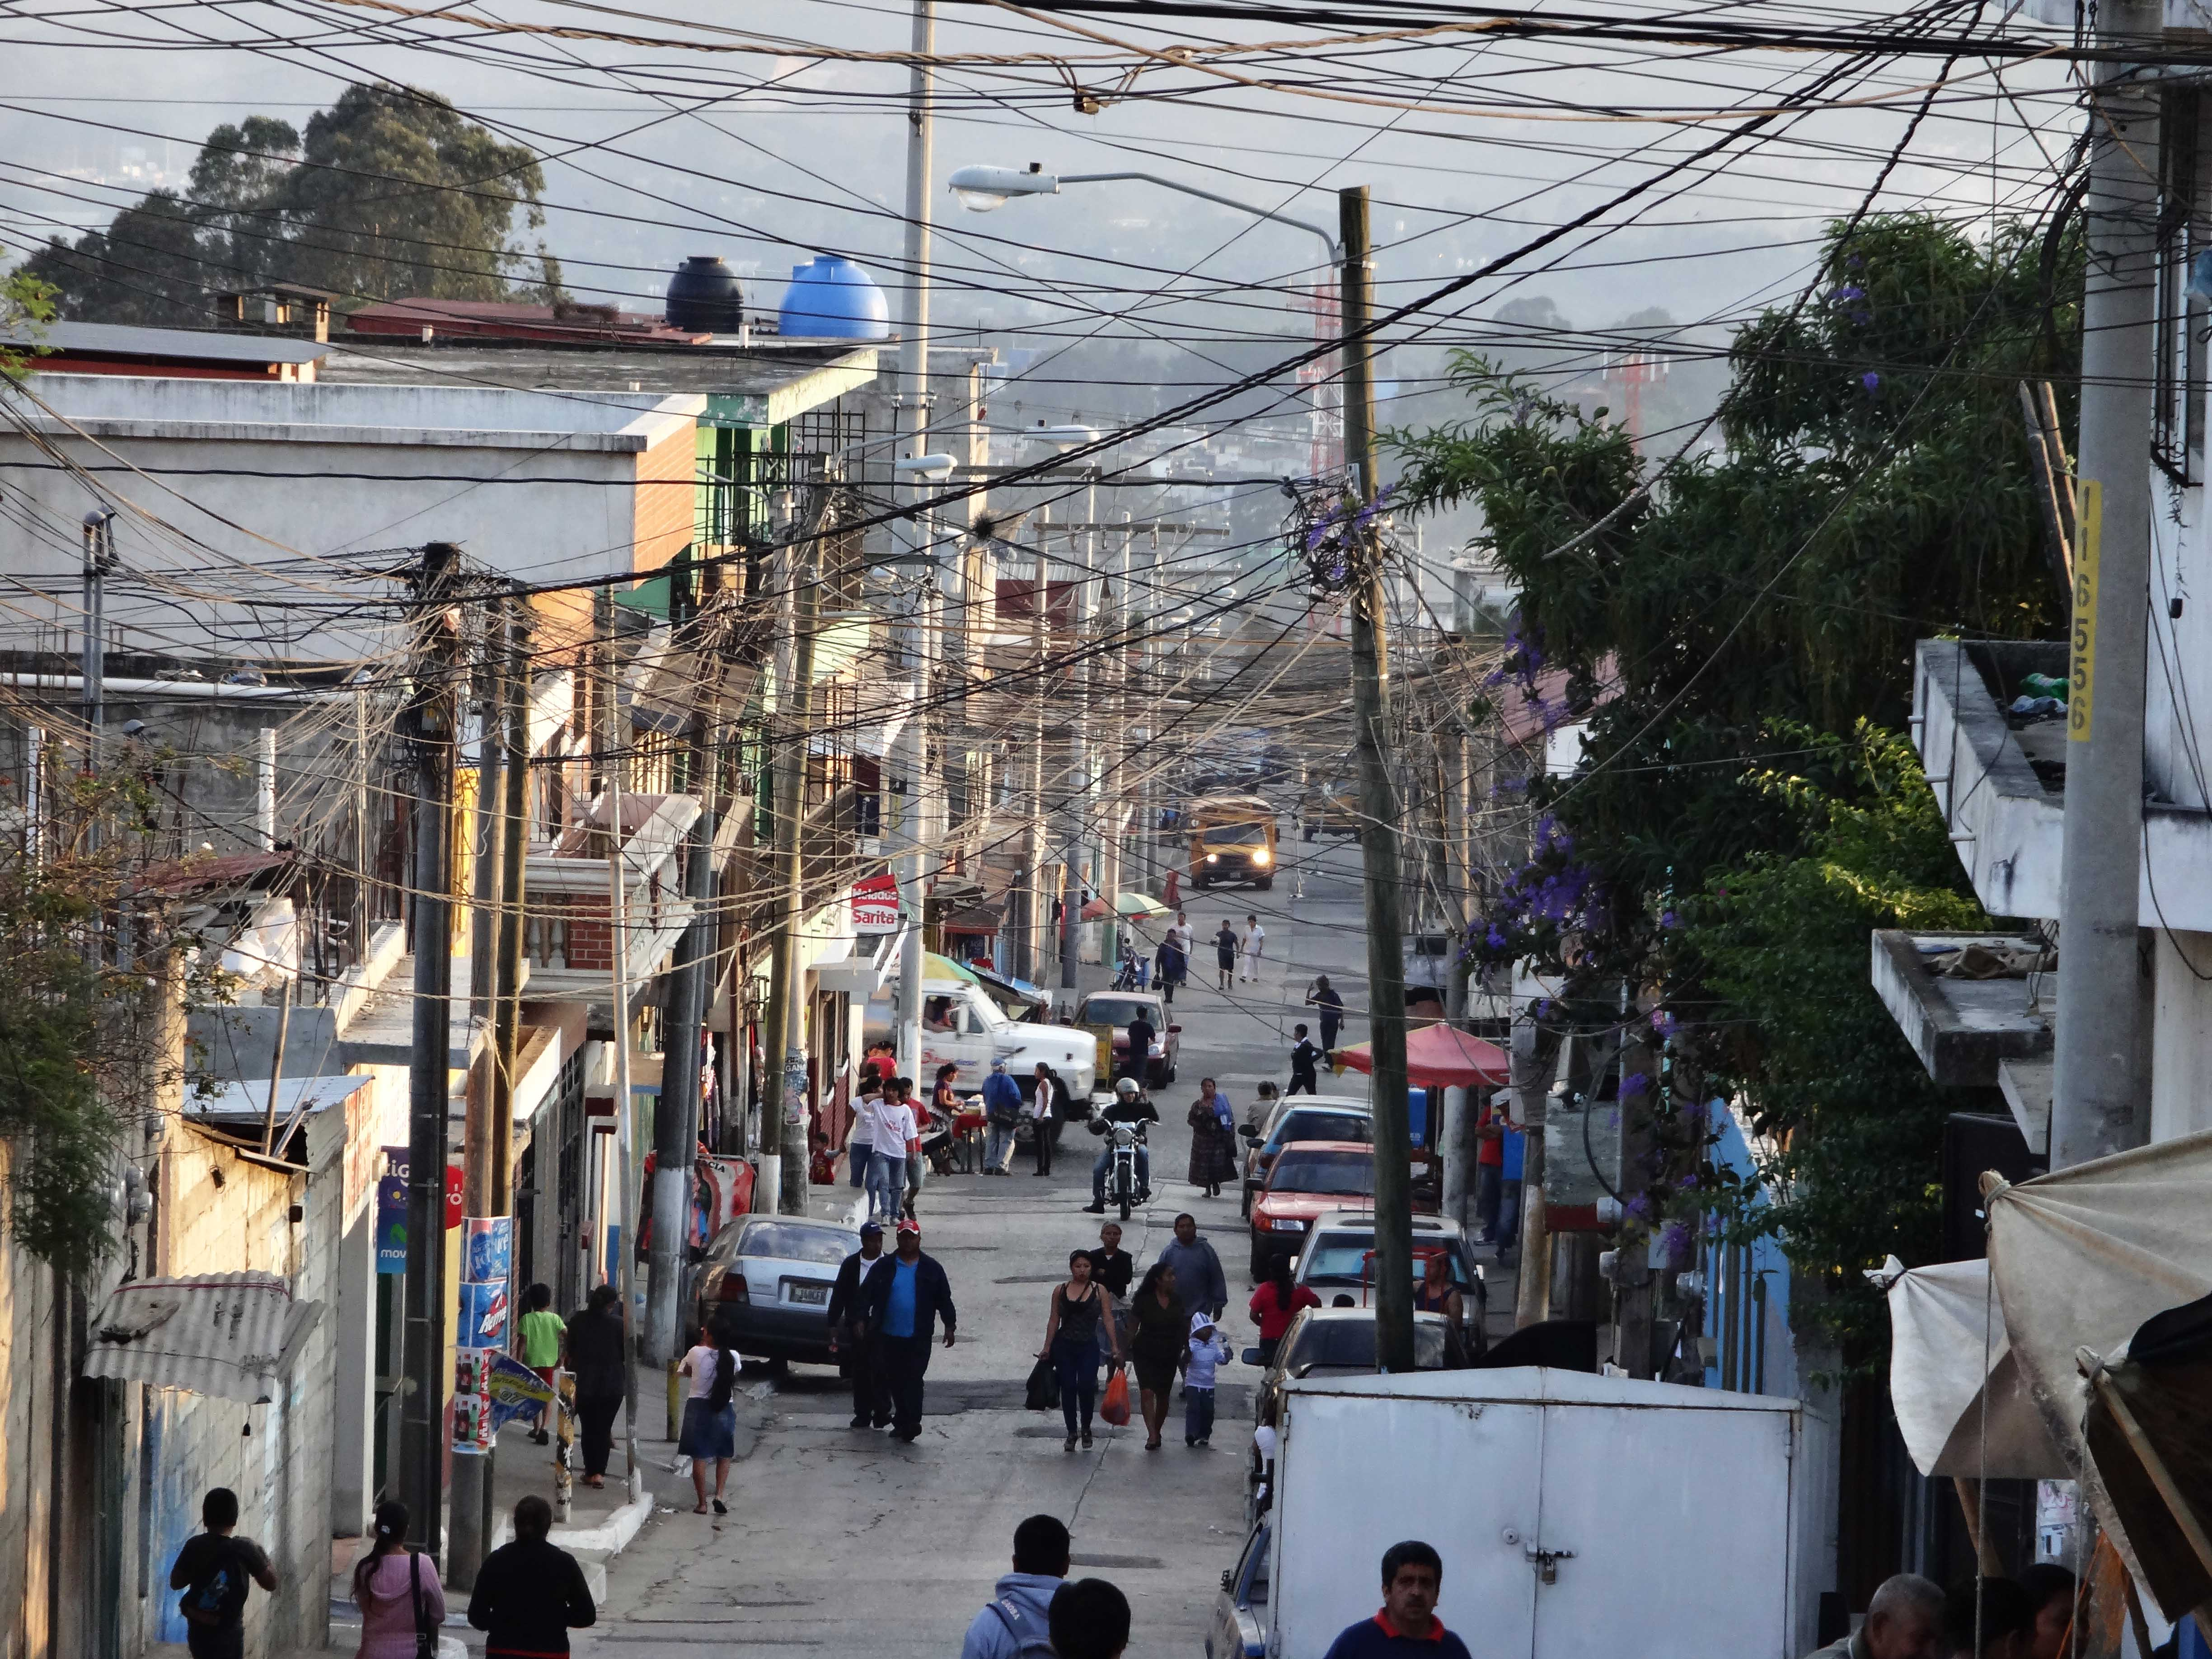 Street in a poor barrio in Central America.